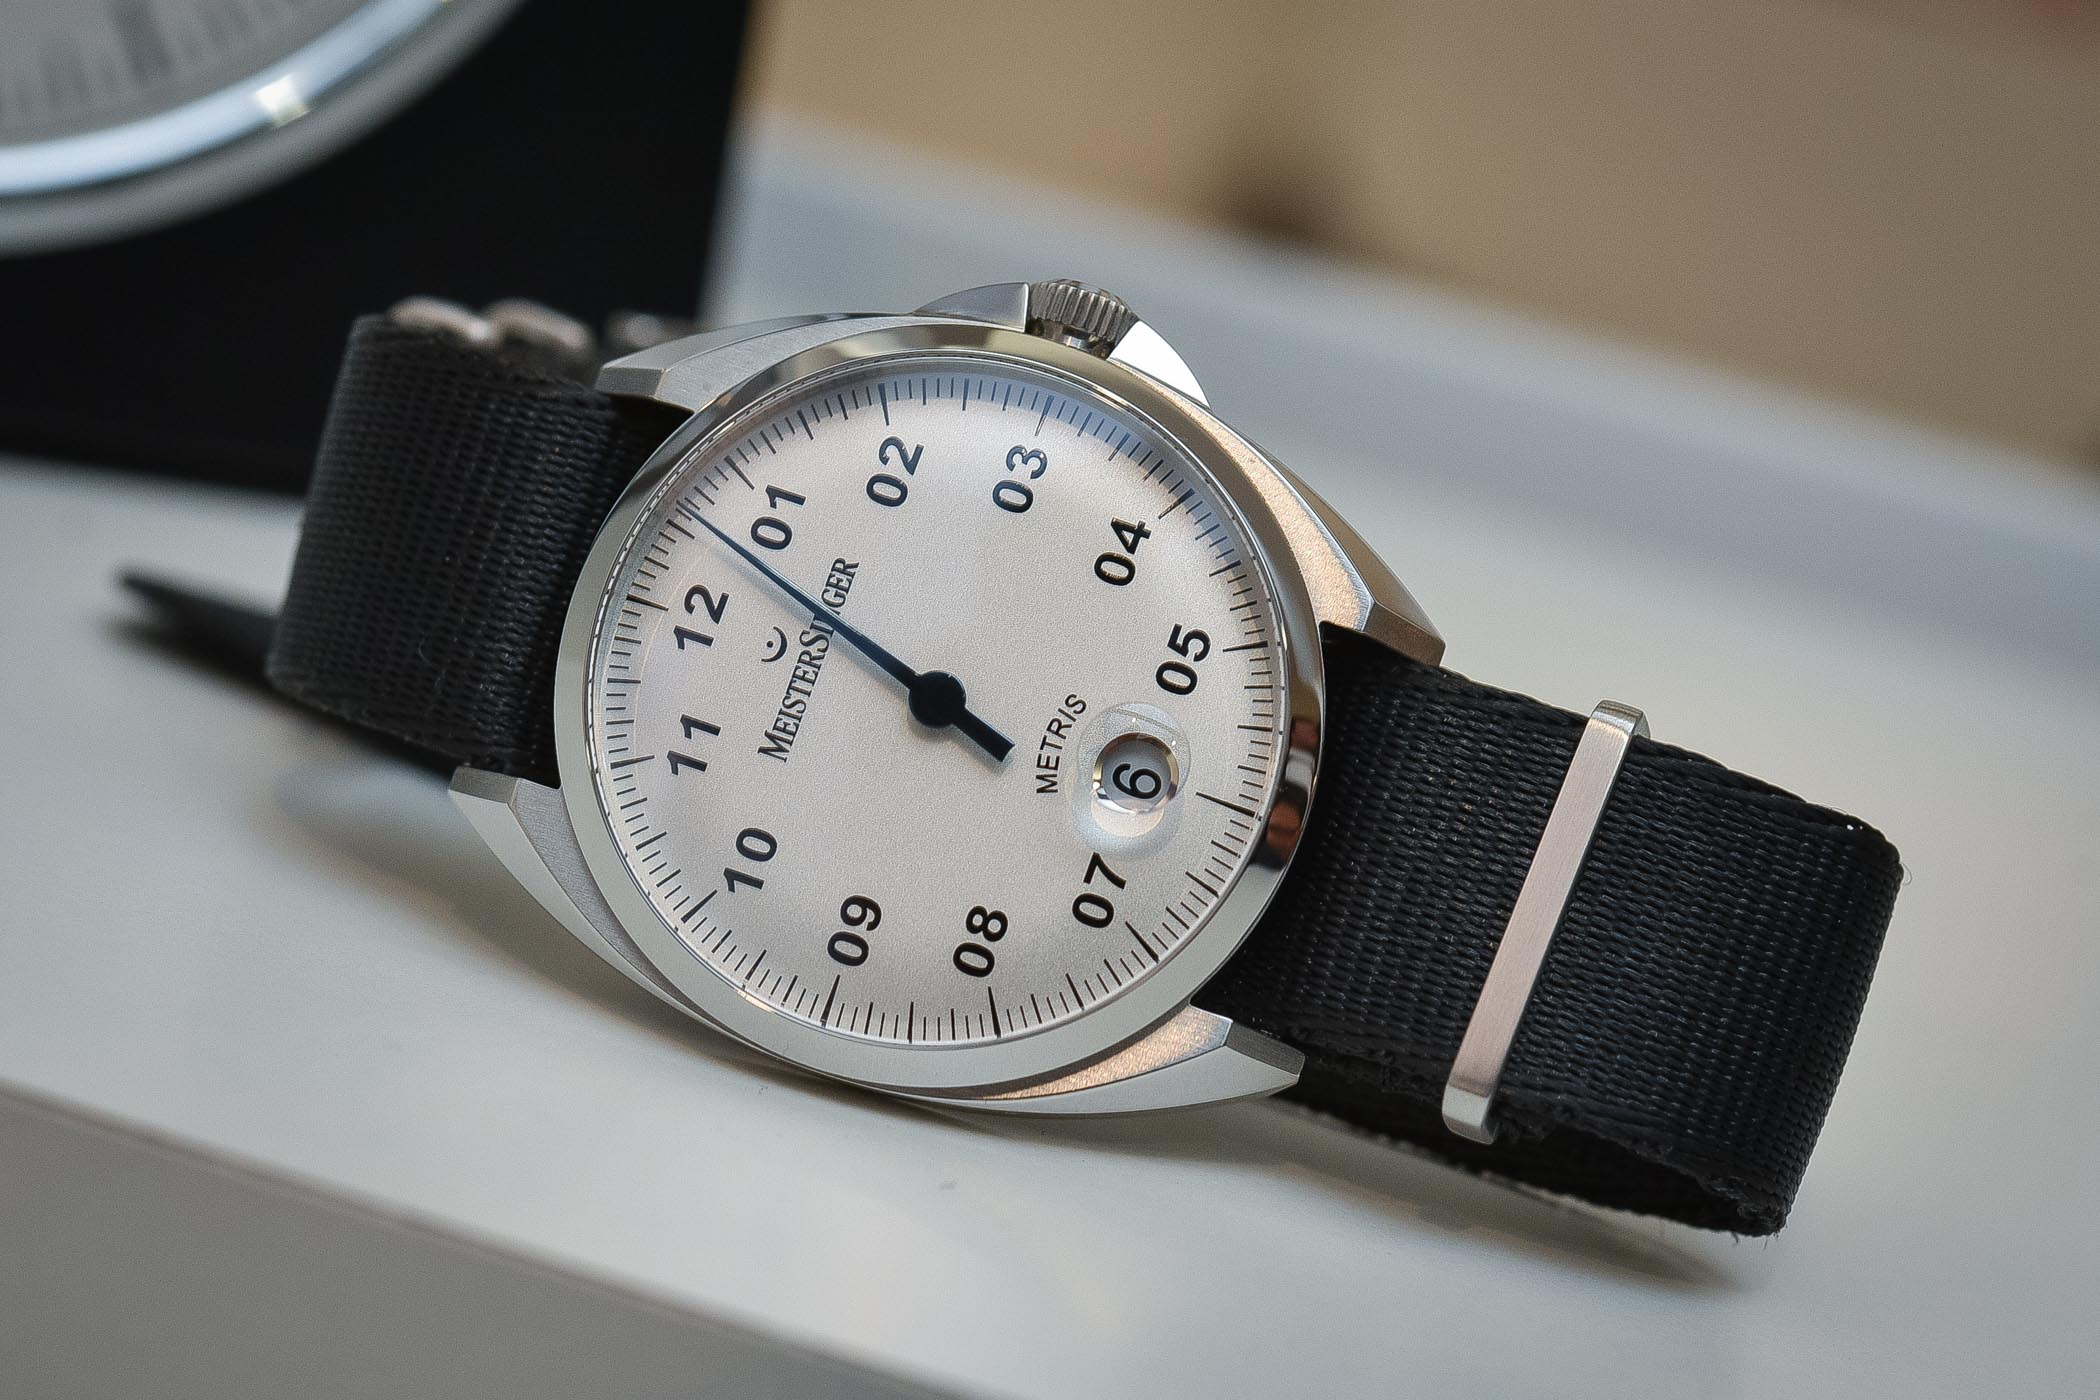 MeisterSinger Metris collection - Baselworld 2018